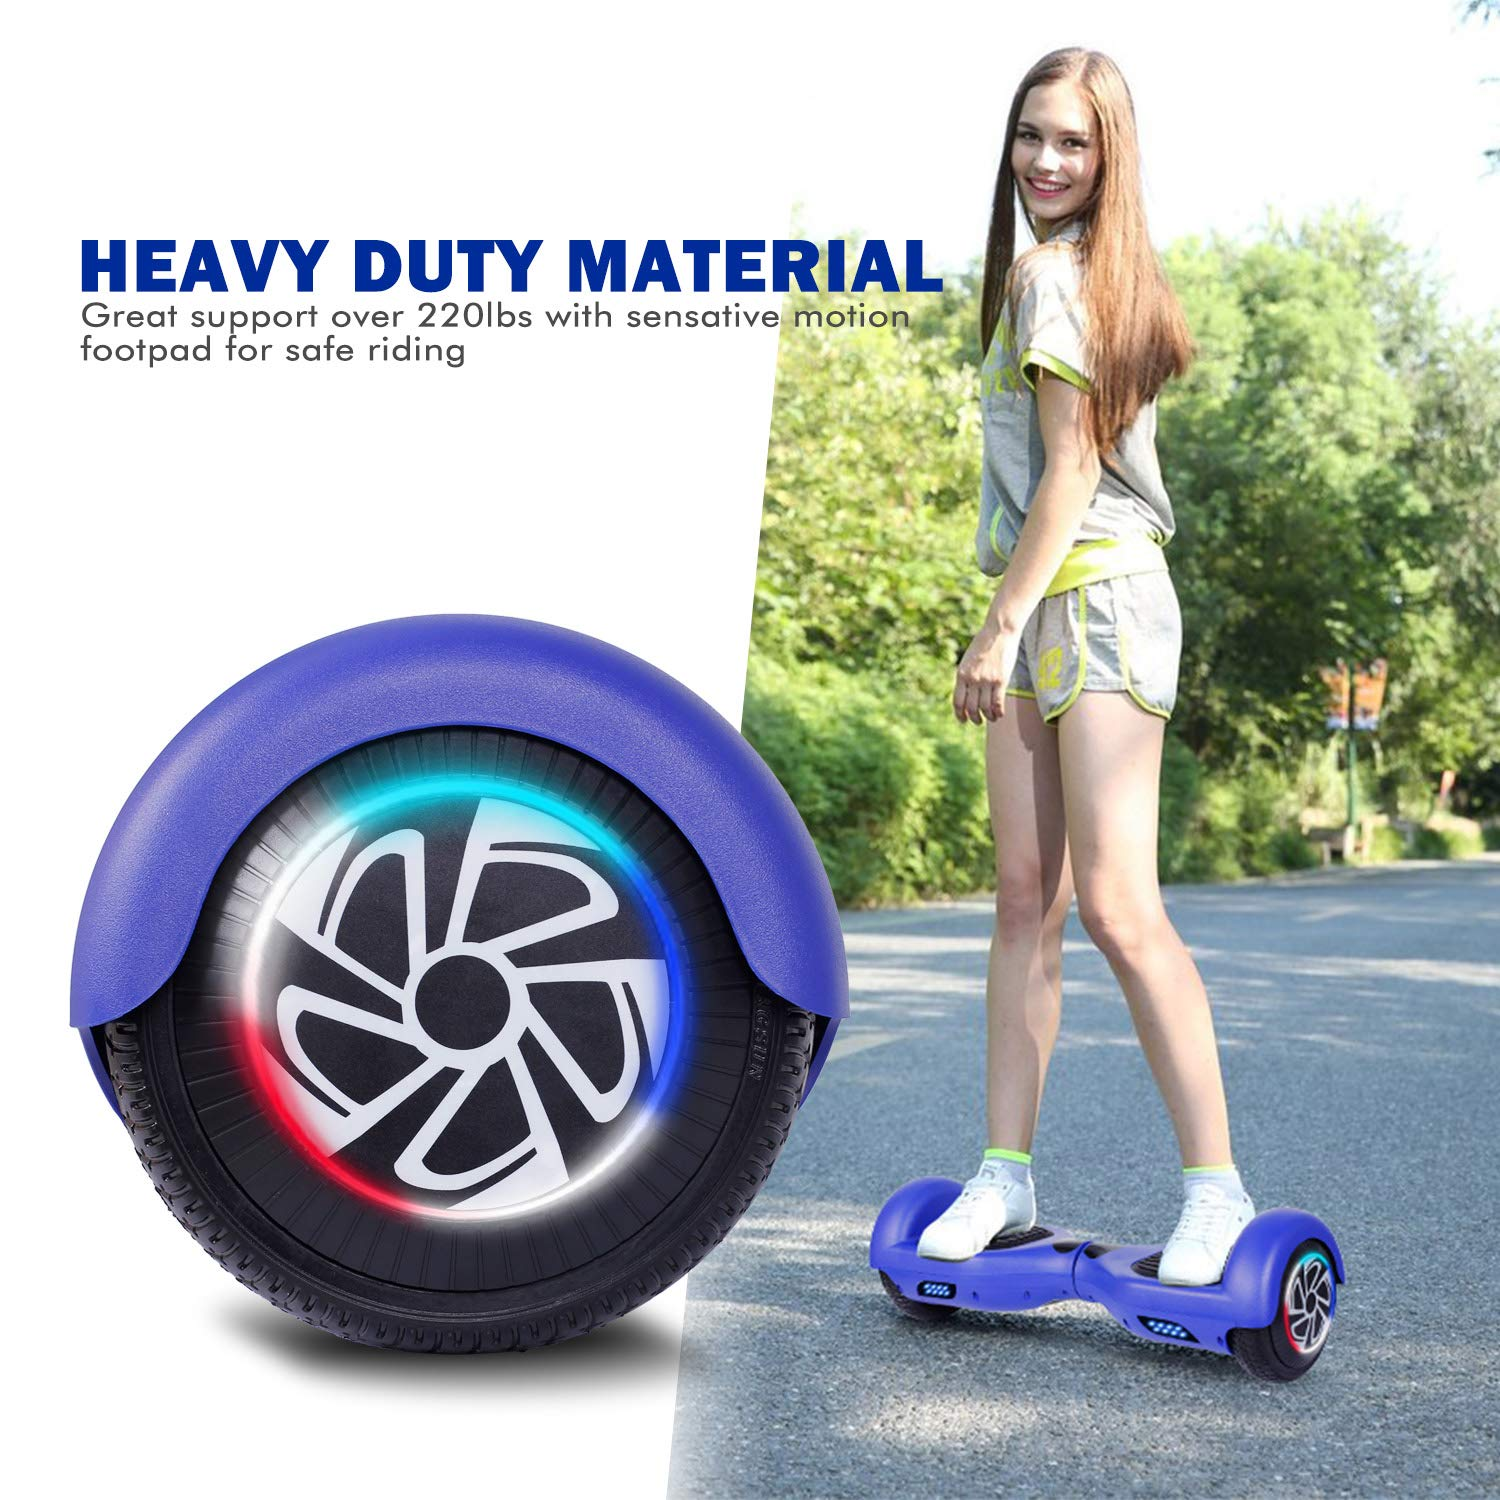 SISIGAD Hoverboard, Self Balancing Hoverboard, 6.5'' Two-Wheel Self Balancing Scooter, Smart Hover Board for Kids Gift, Adult Electric Scooter, with LED Lights and Free Carrying Bag UL2272 Certified by SISIGAD (Image #5)